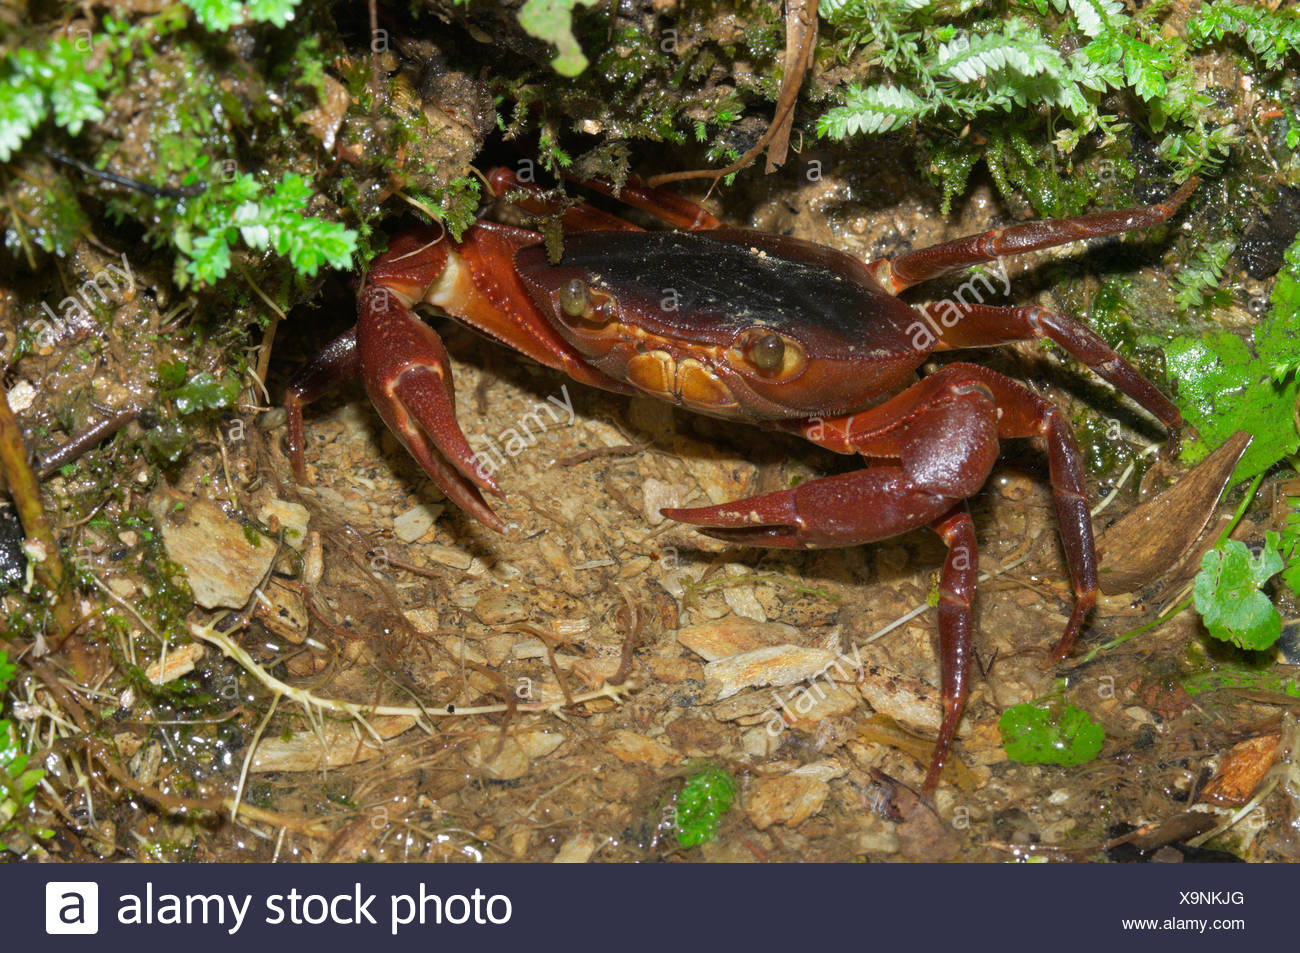 Red land crab (Geocarcinus lateralis) showing claws. - Stock Image